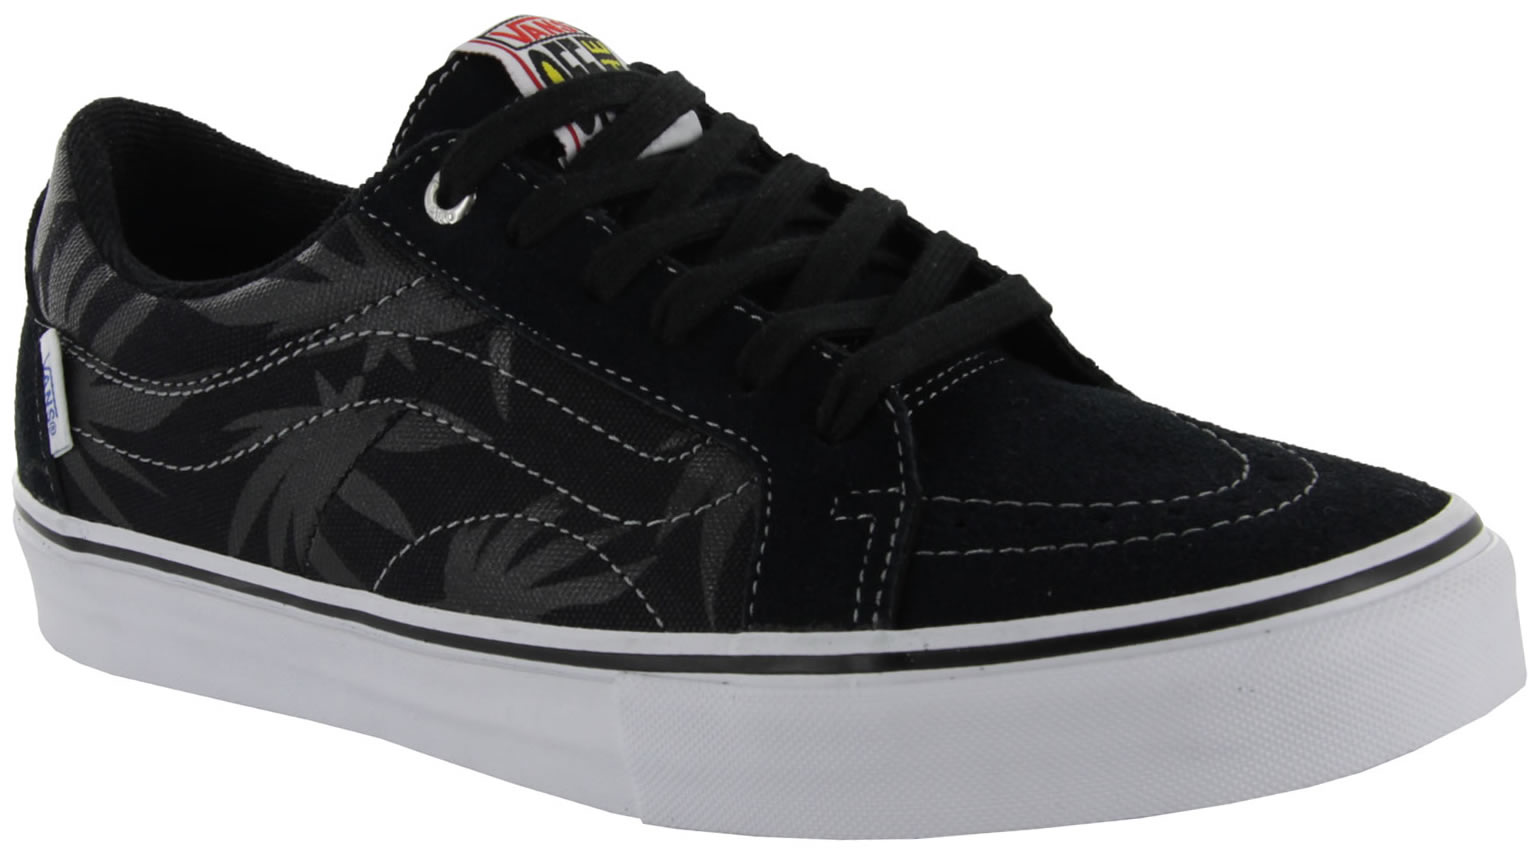 Vans Shoes AV Native American Low Navy Black  3c8c0fef2